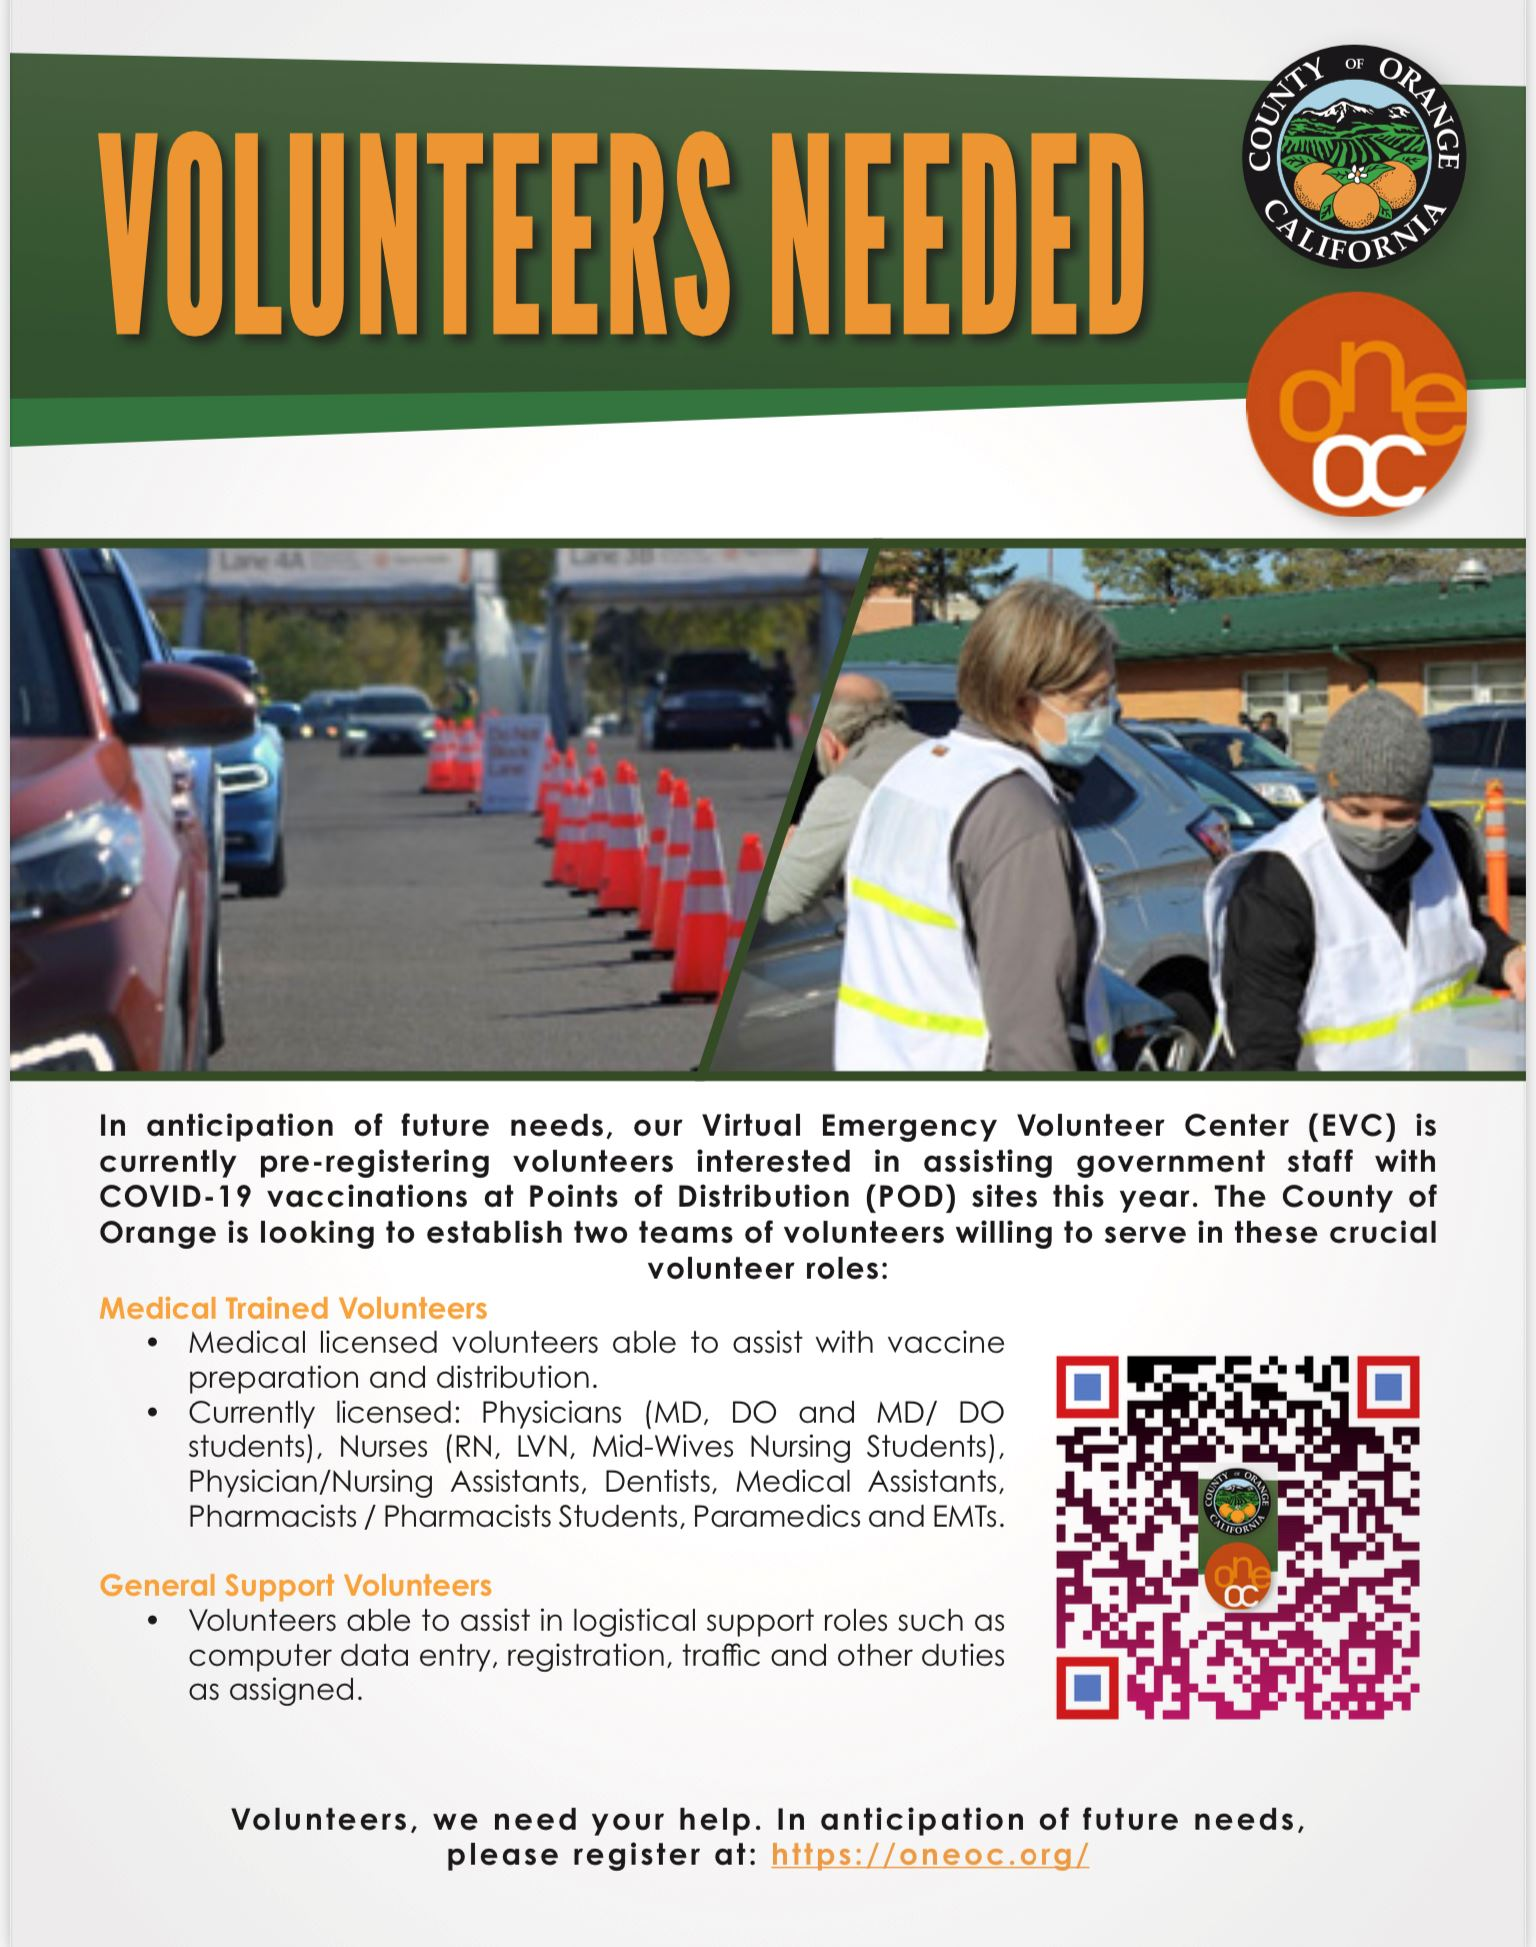 Flyer for volunteers needed in administering COVID-19 vaccine